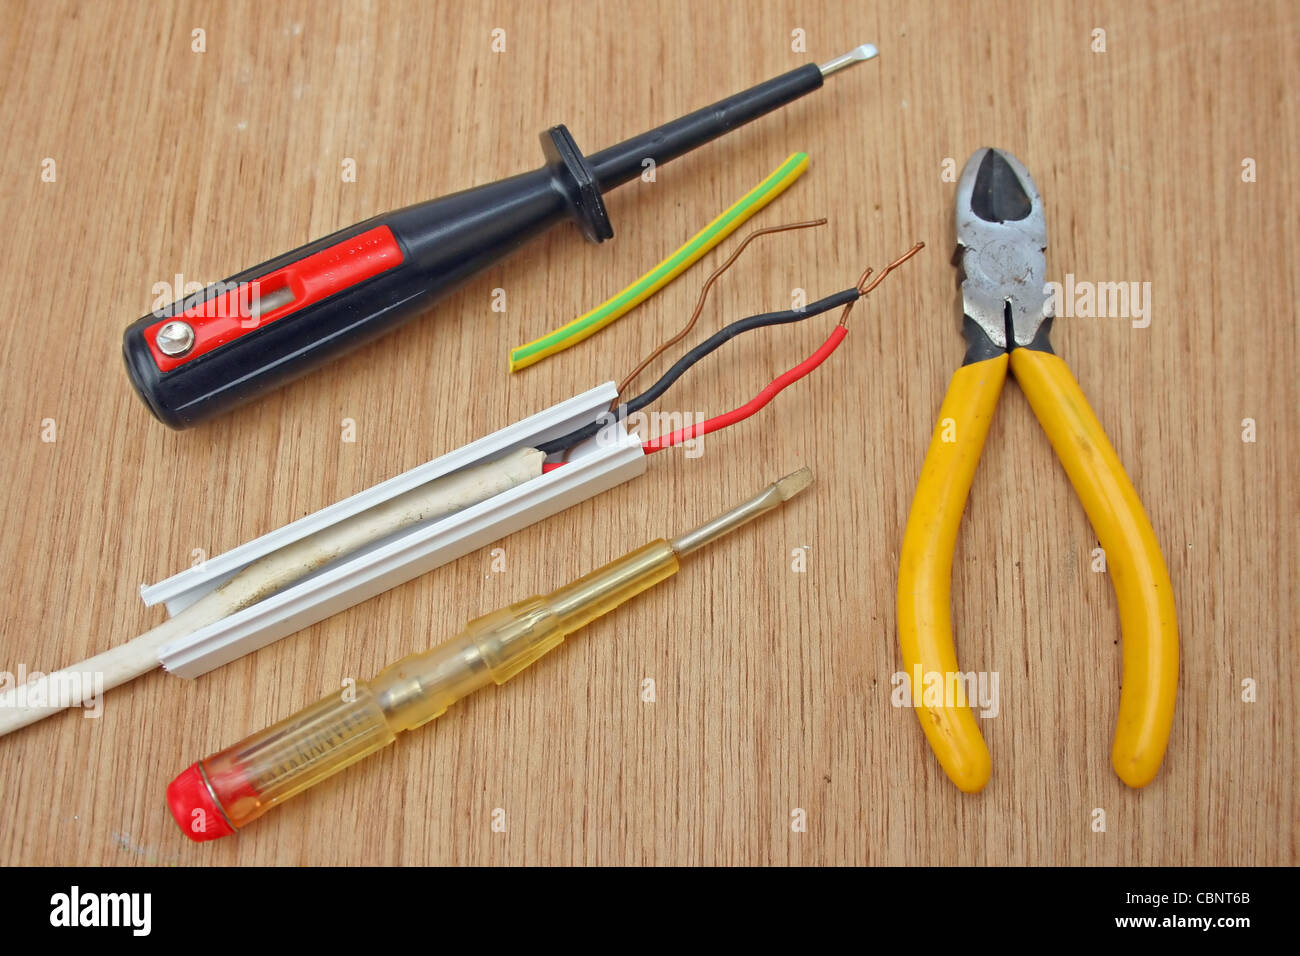 electricians tools with wiring stock photo 41661939 alamy tools for writing a paper tools for wiring #1